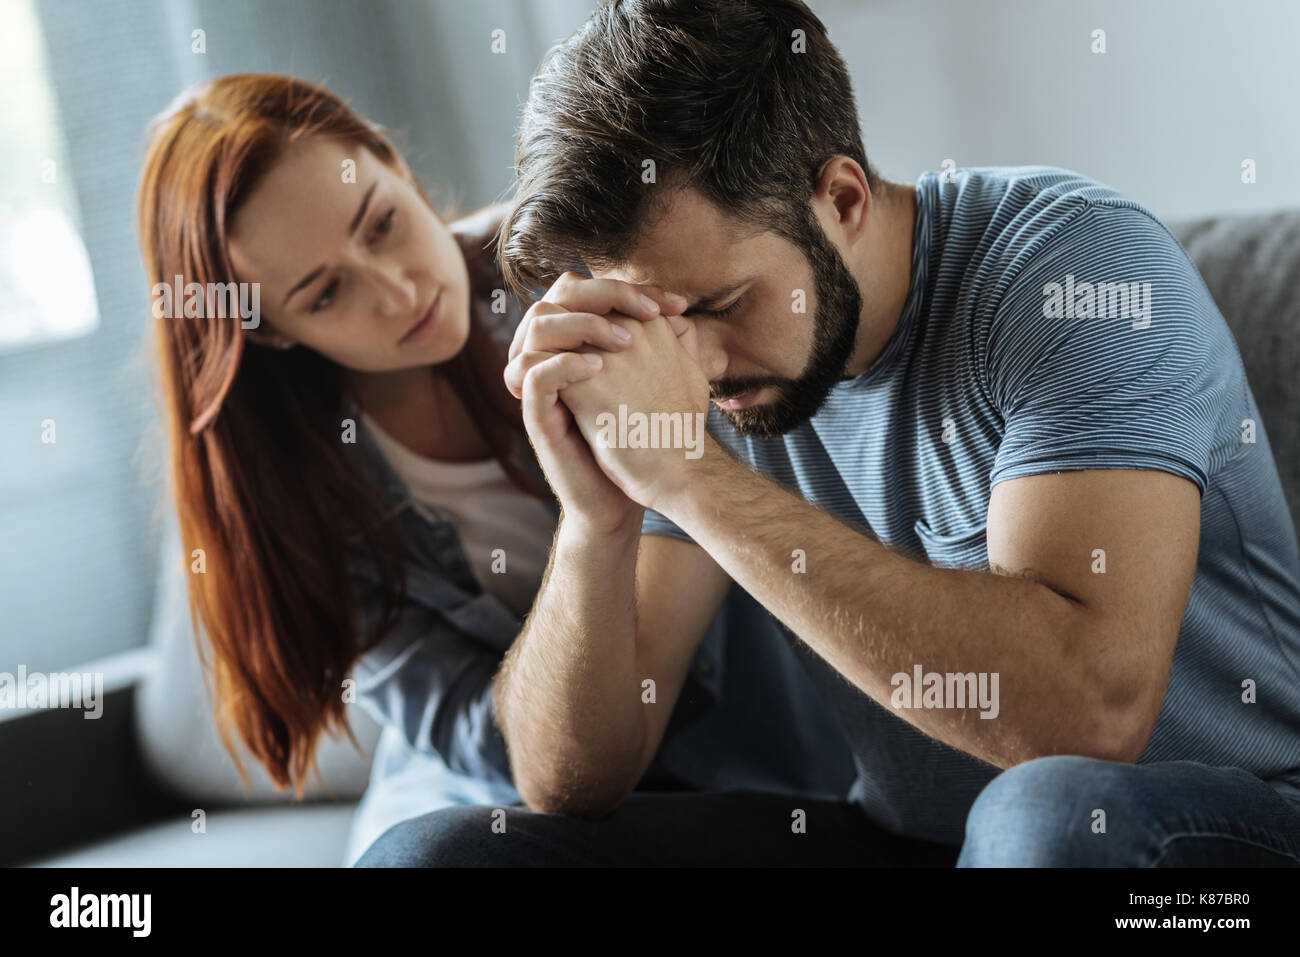 Cheerless thoughtful man dealing with a problem - Stock Image